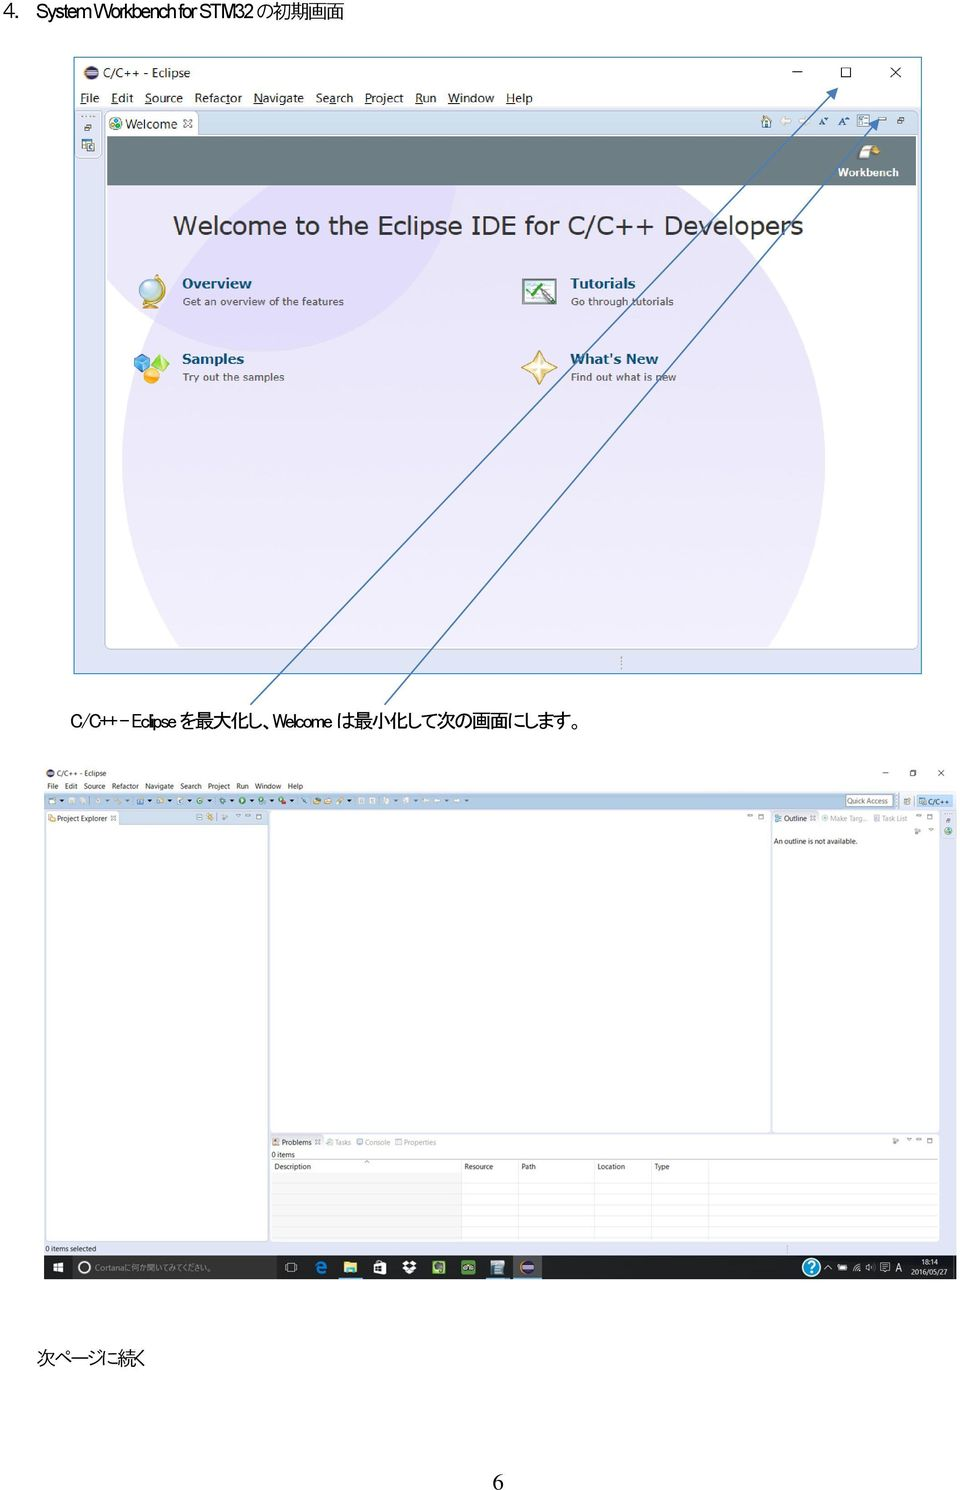 Eclipse を 最 大 化 し Welcome は